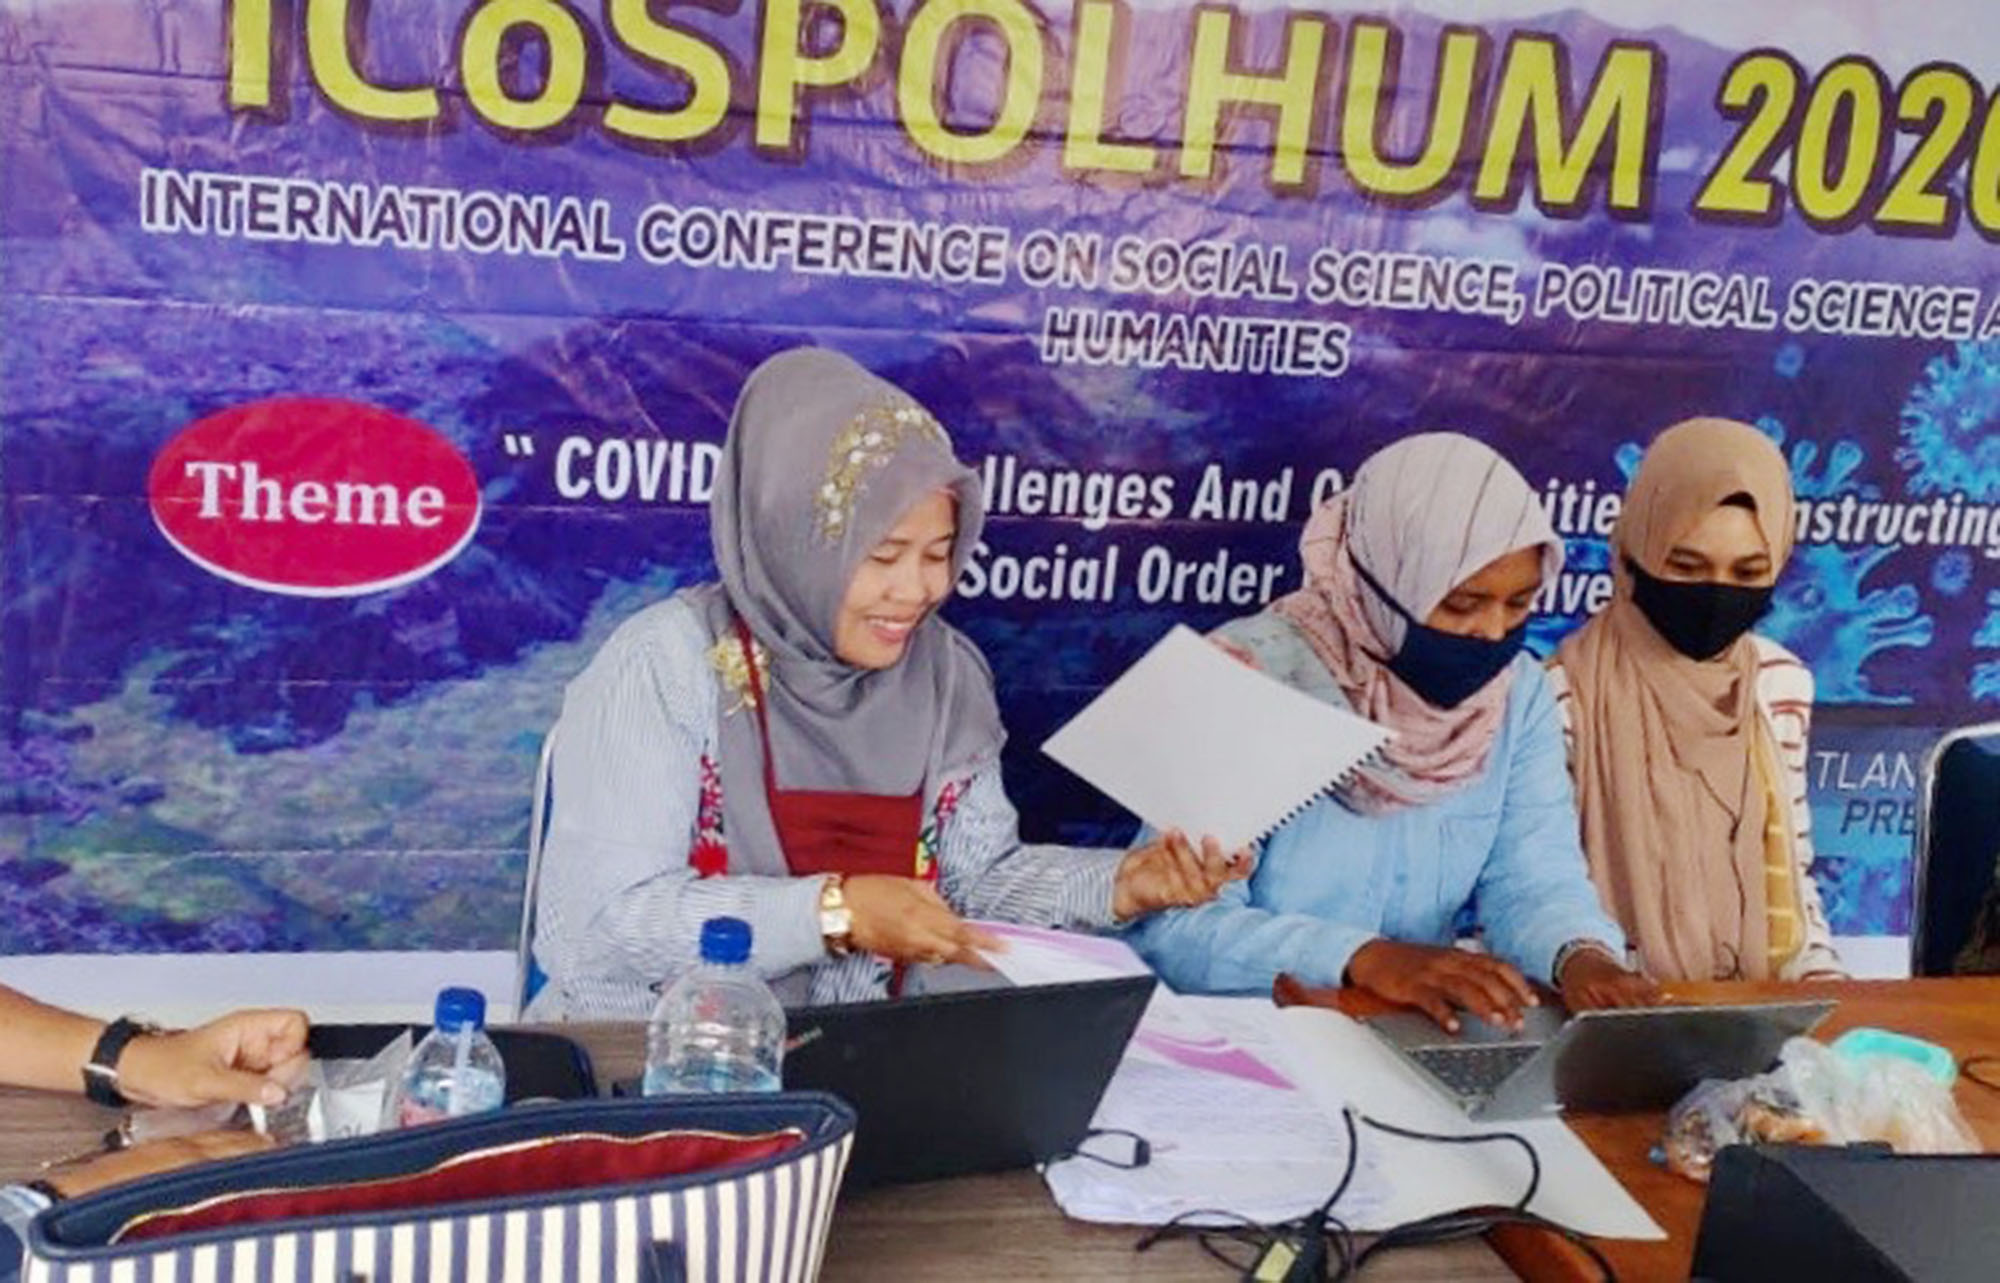 http://news.unimal.ac.id/index/single/1553/ini-lima-keynote-speaker-konferensi-internasional-di-fisip-unimal